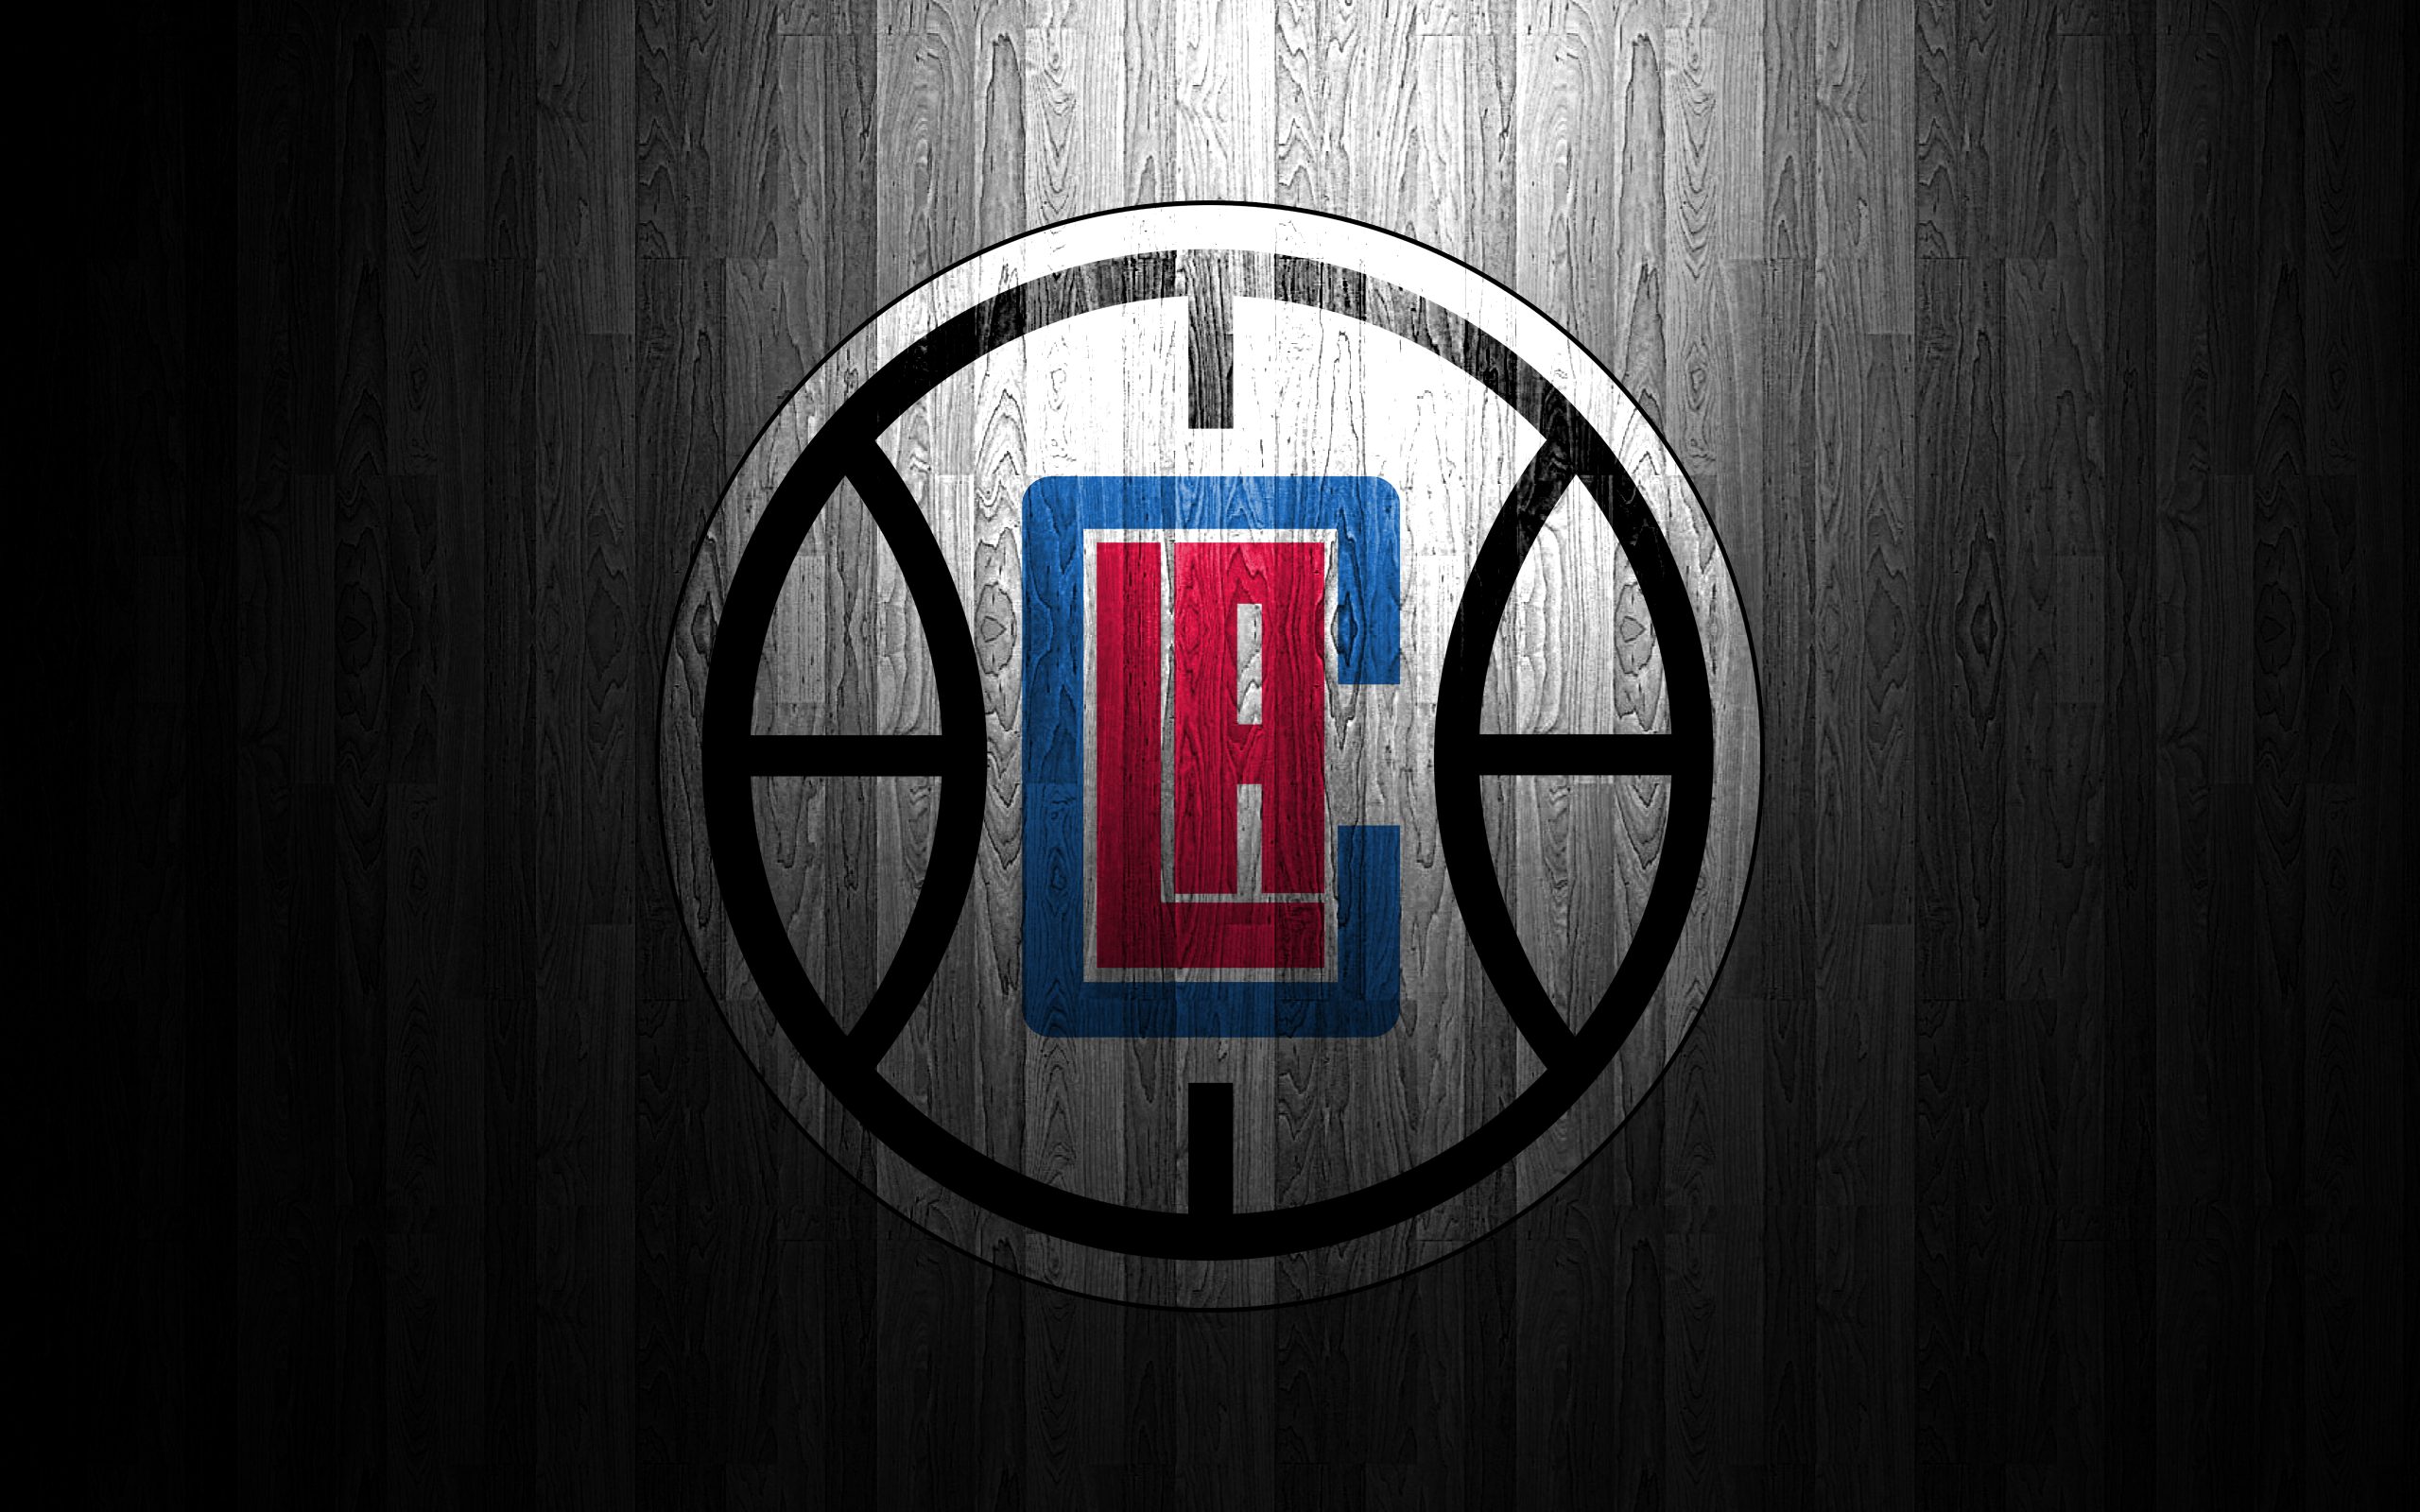 Los Angeles Clippers wallpaper HD 2016 in Basketball | Wallpapers HD